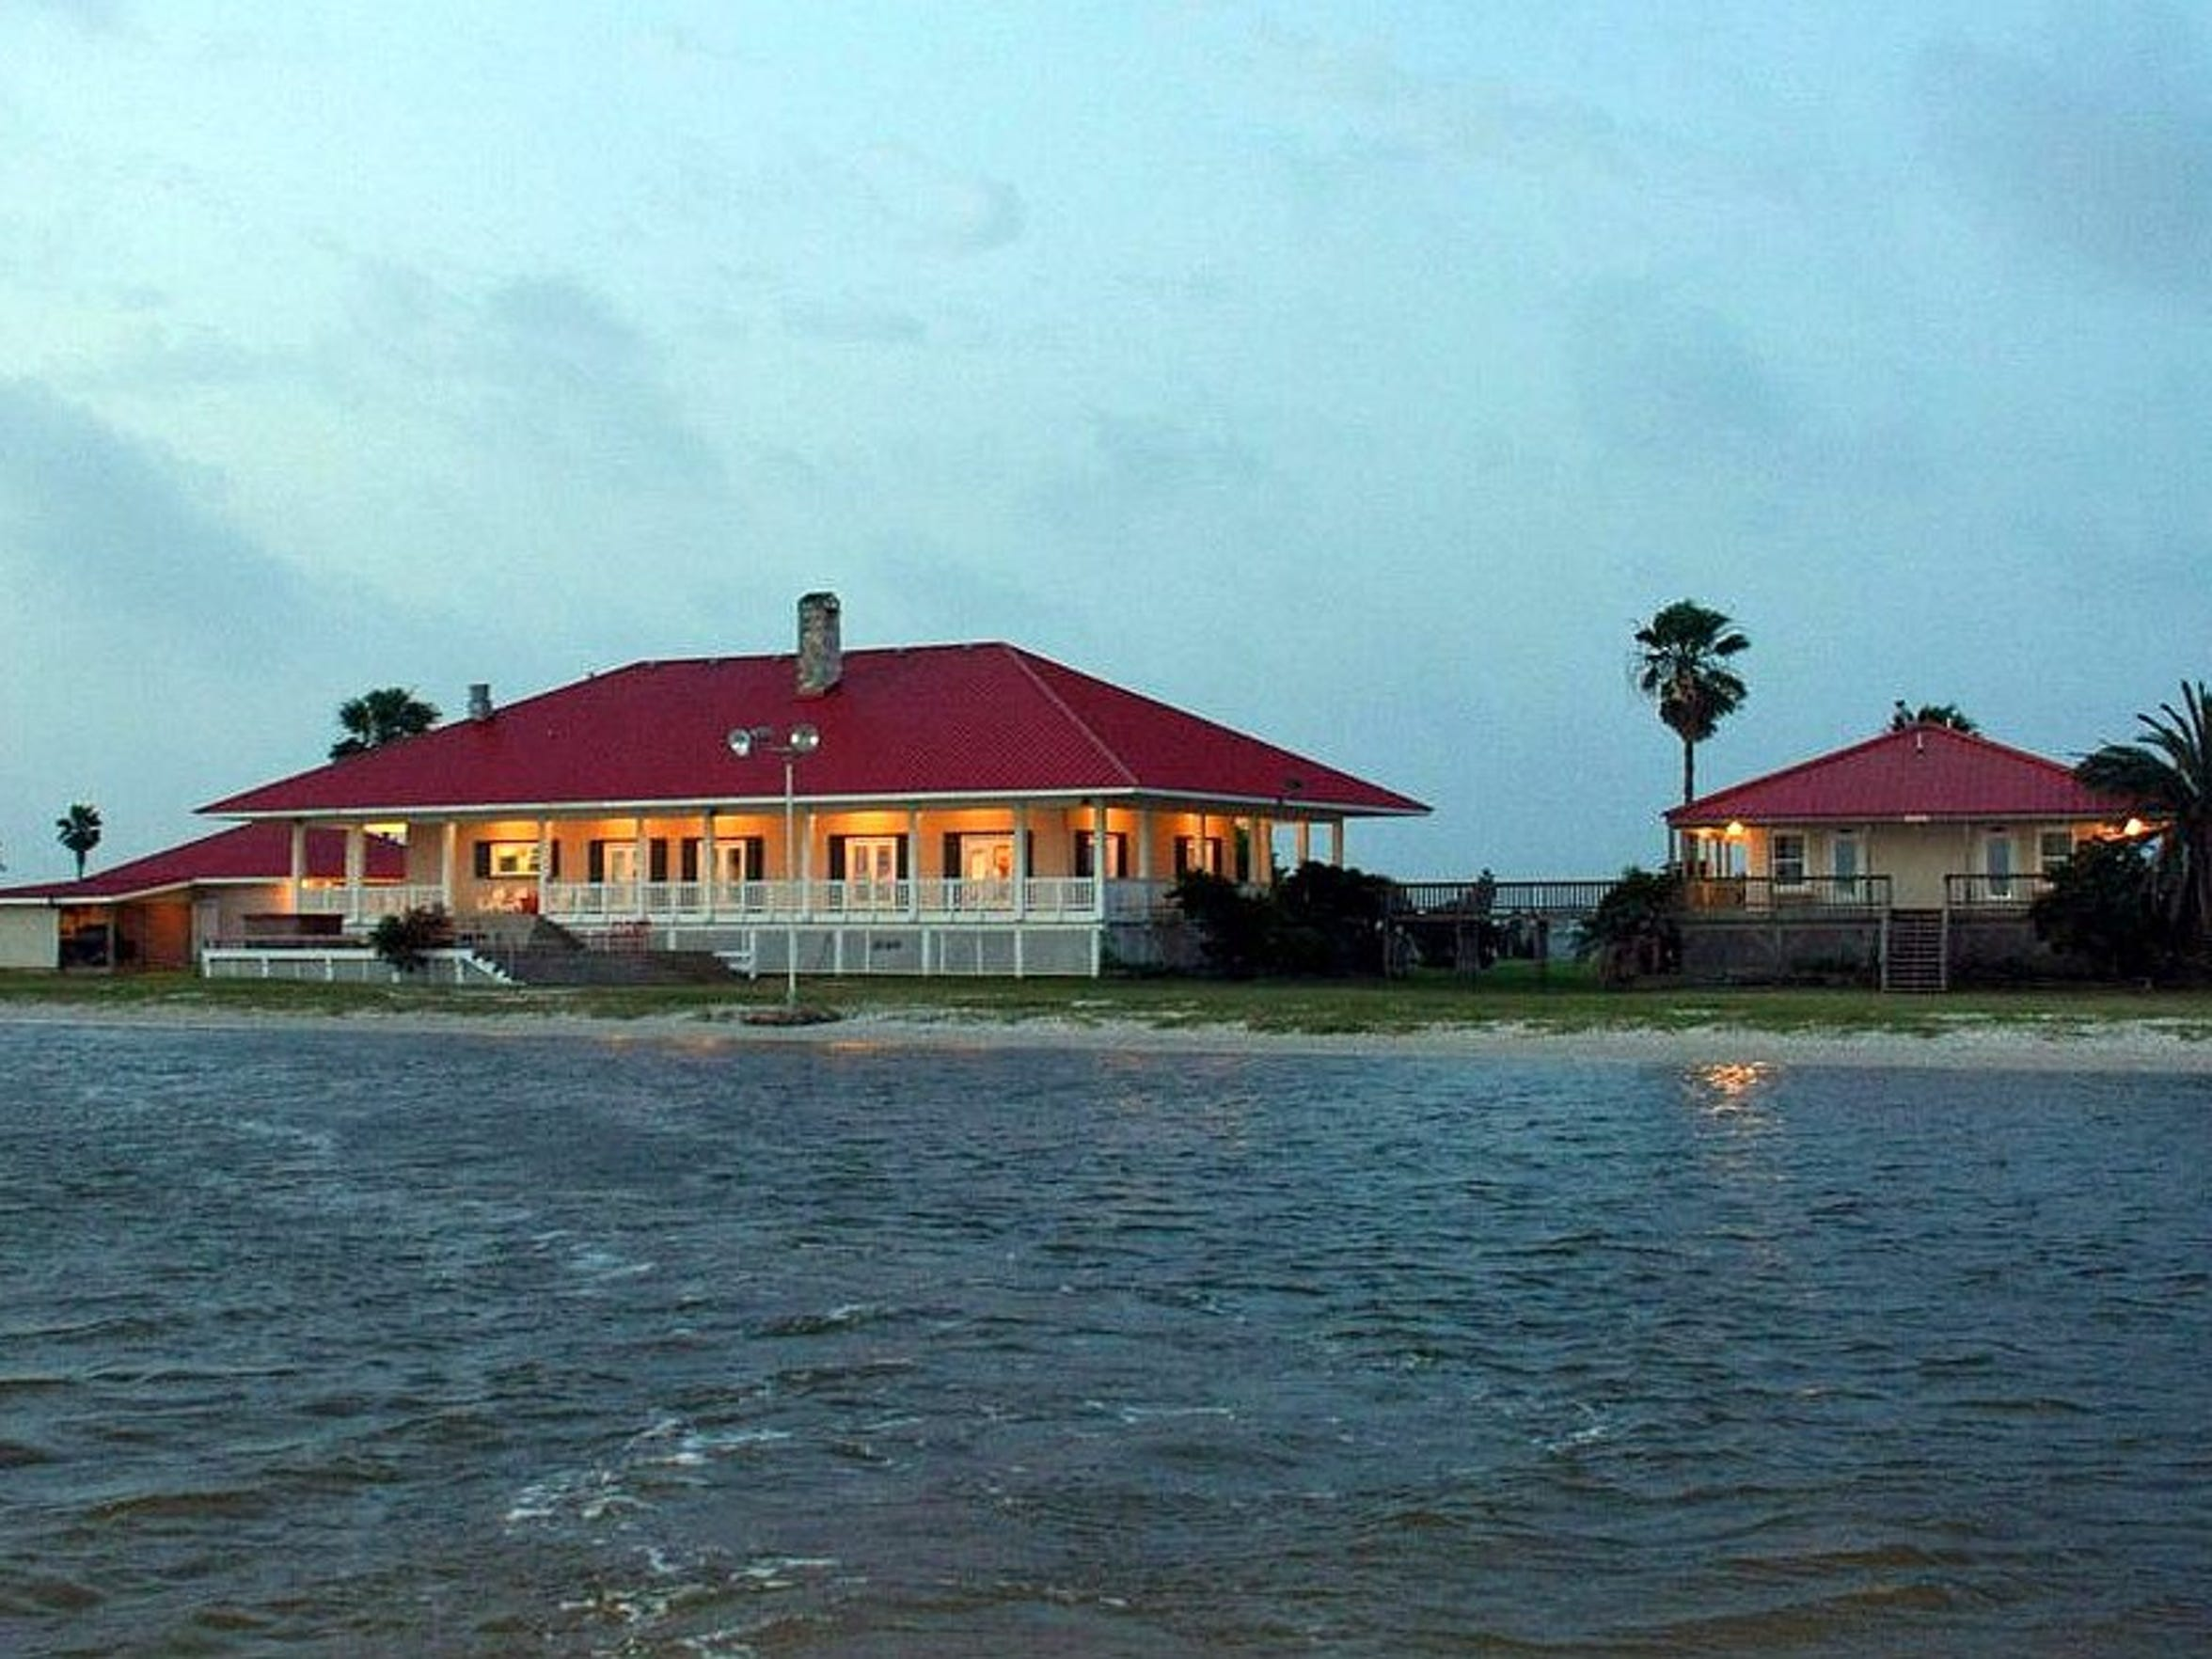 The Redfish lodge before Hurricane Harvey.